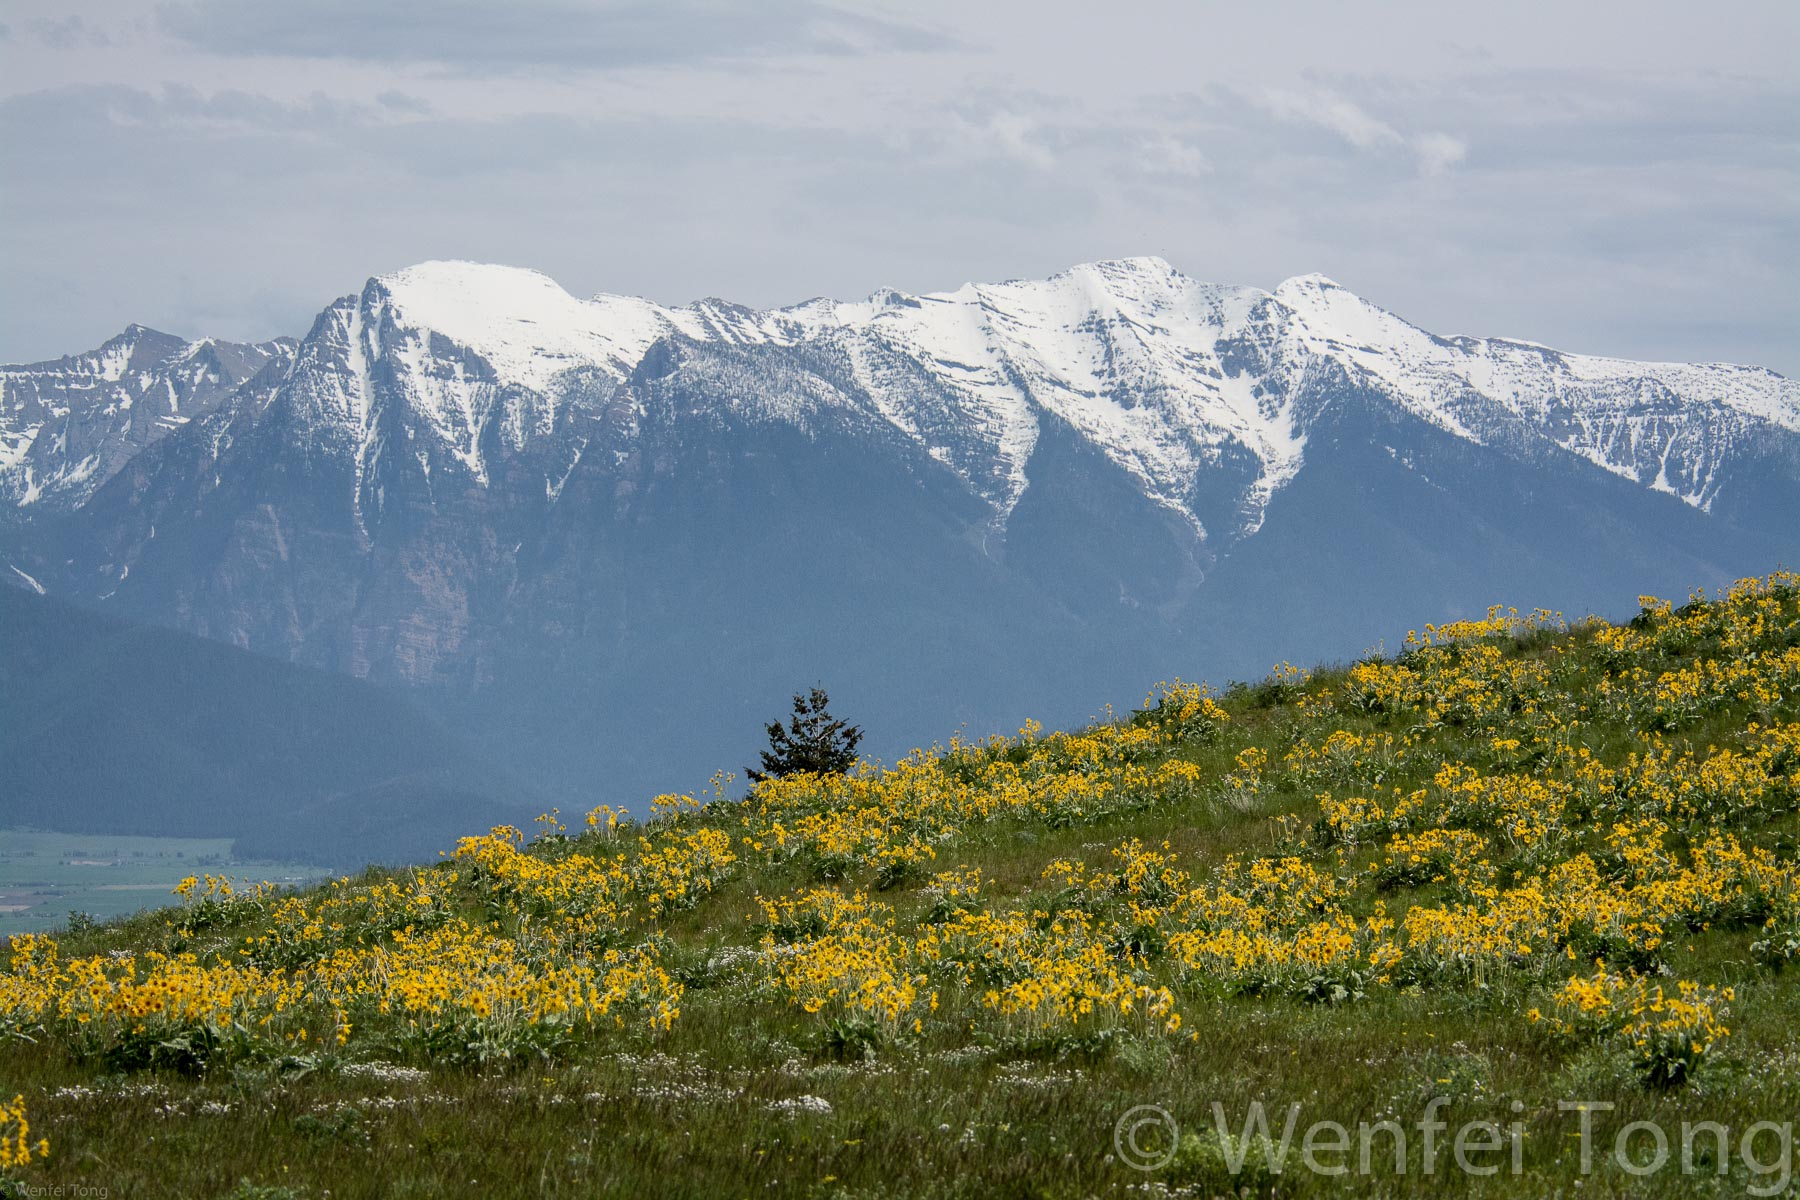 View of the Mission mountains with arrowleaf balsamroot blooming in the foreground